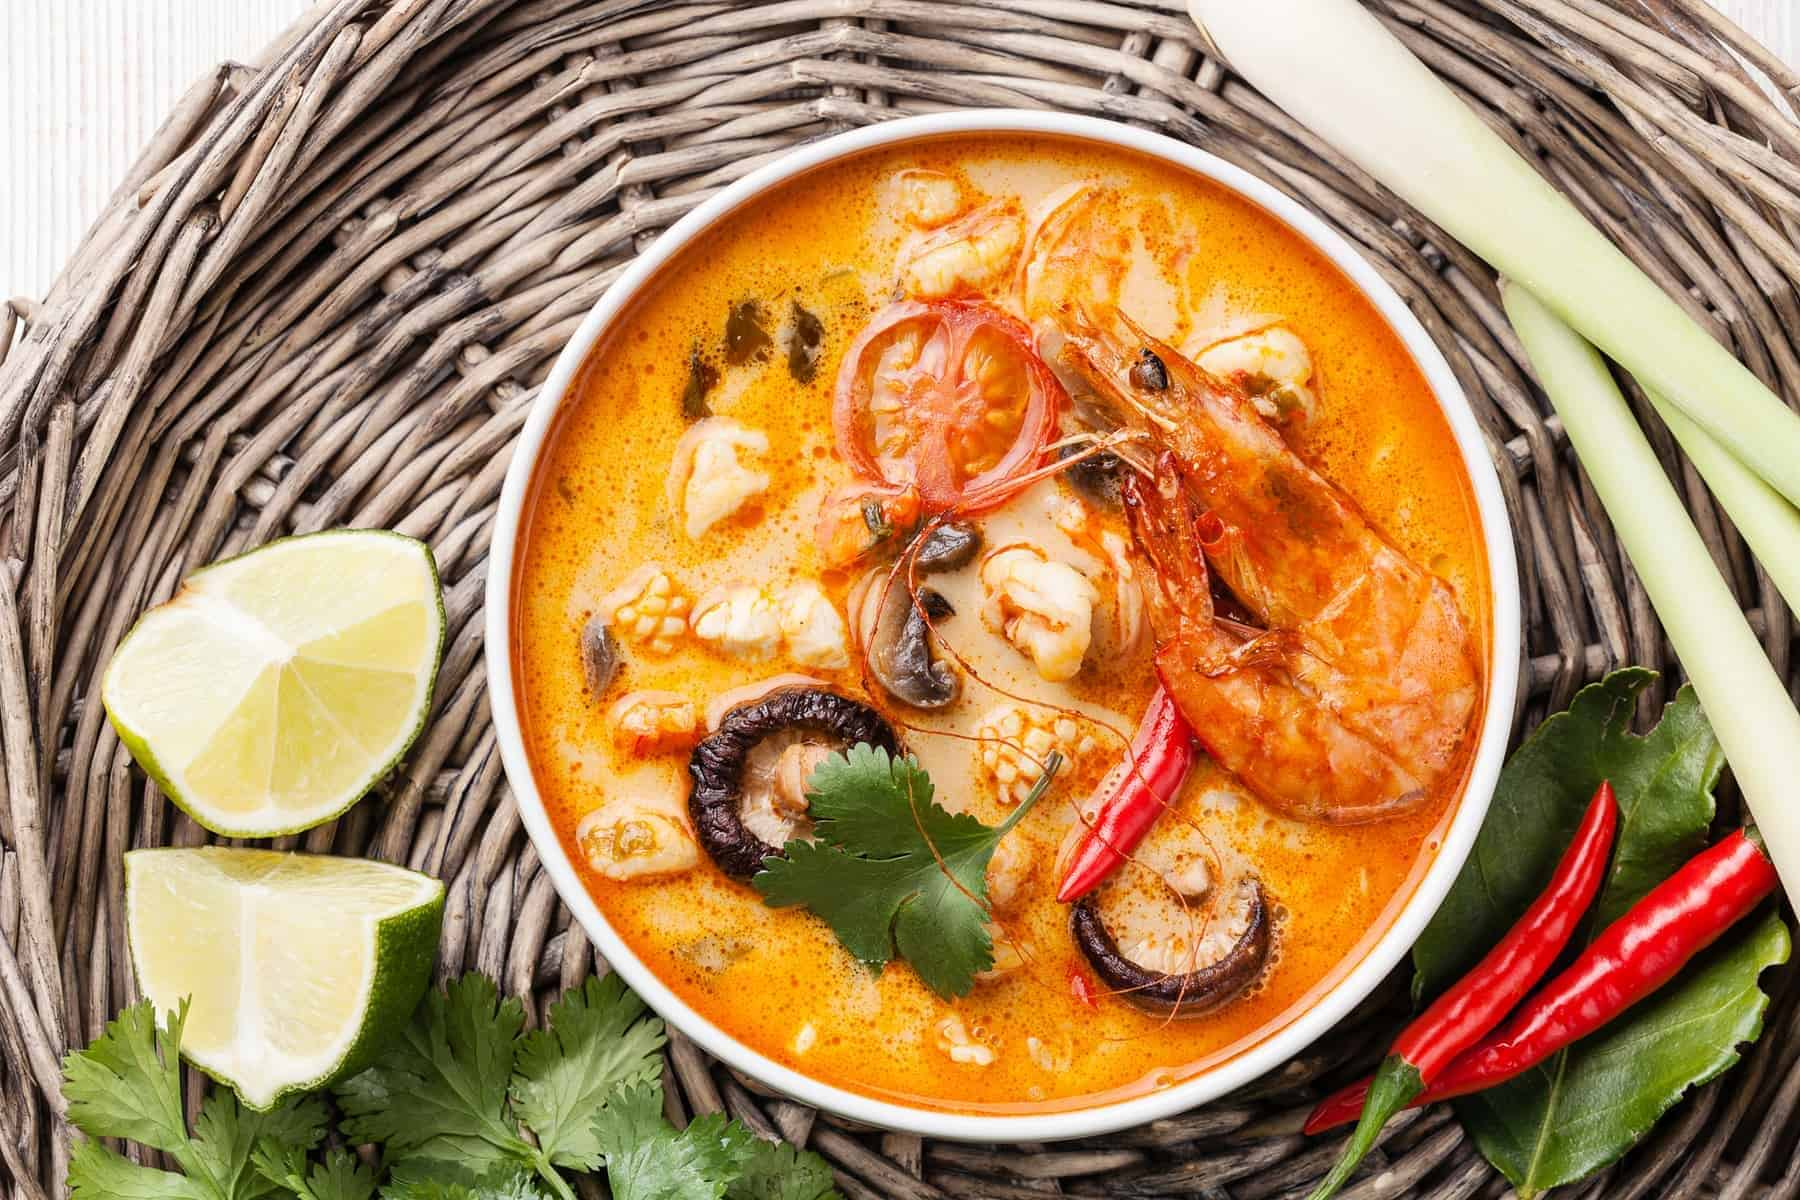 Spicy Thai soup Tom Yum with Coconut milk, Chili pepper and Seafood